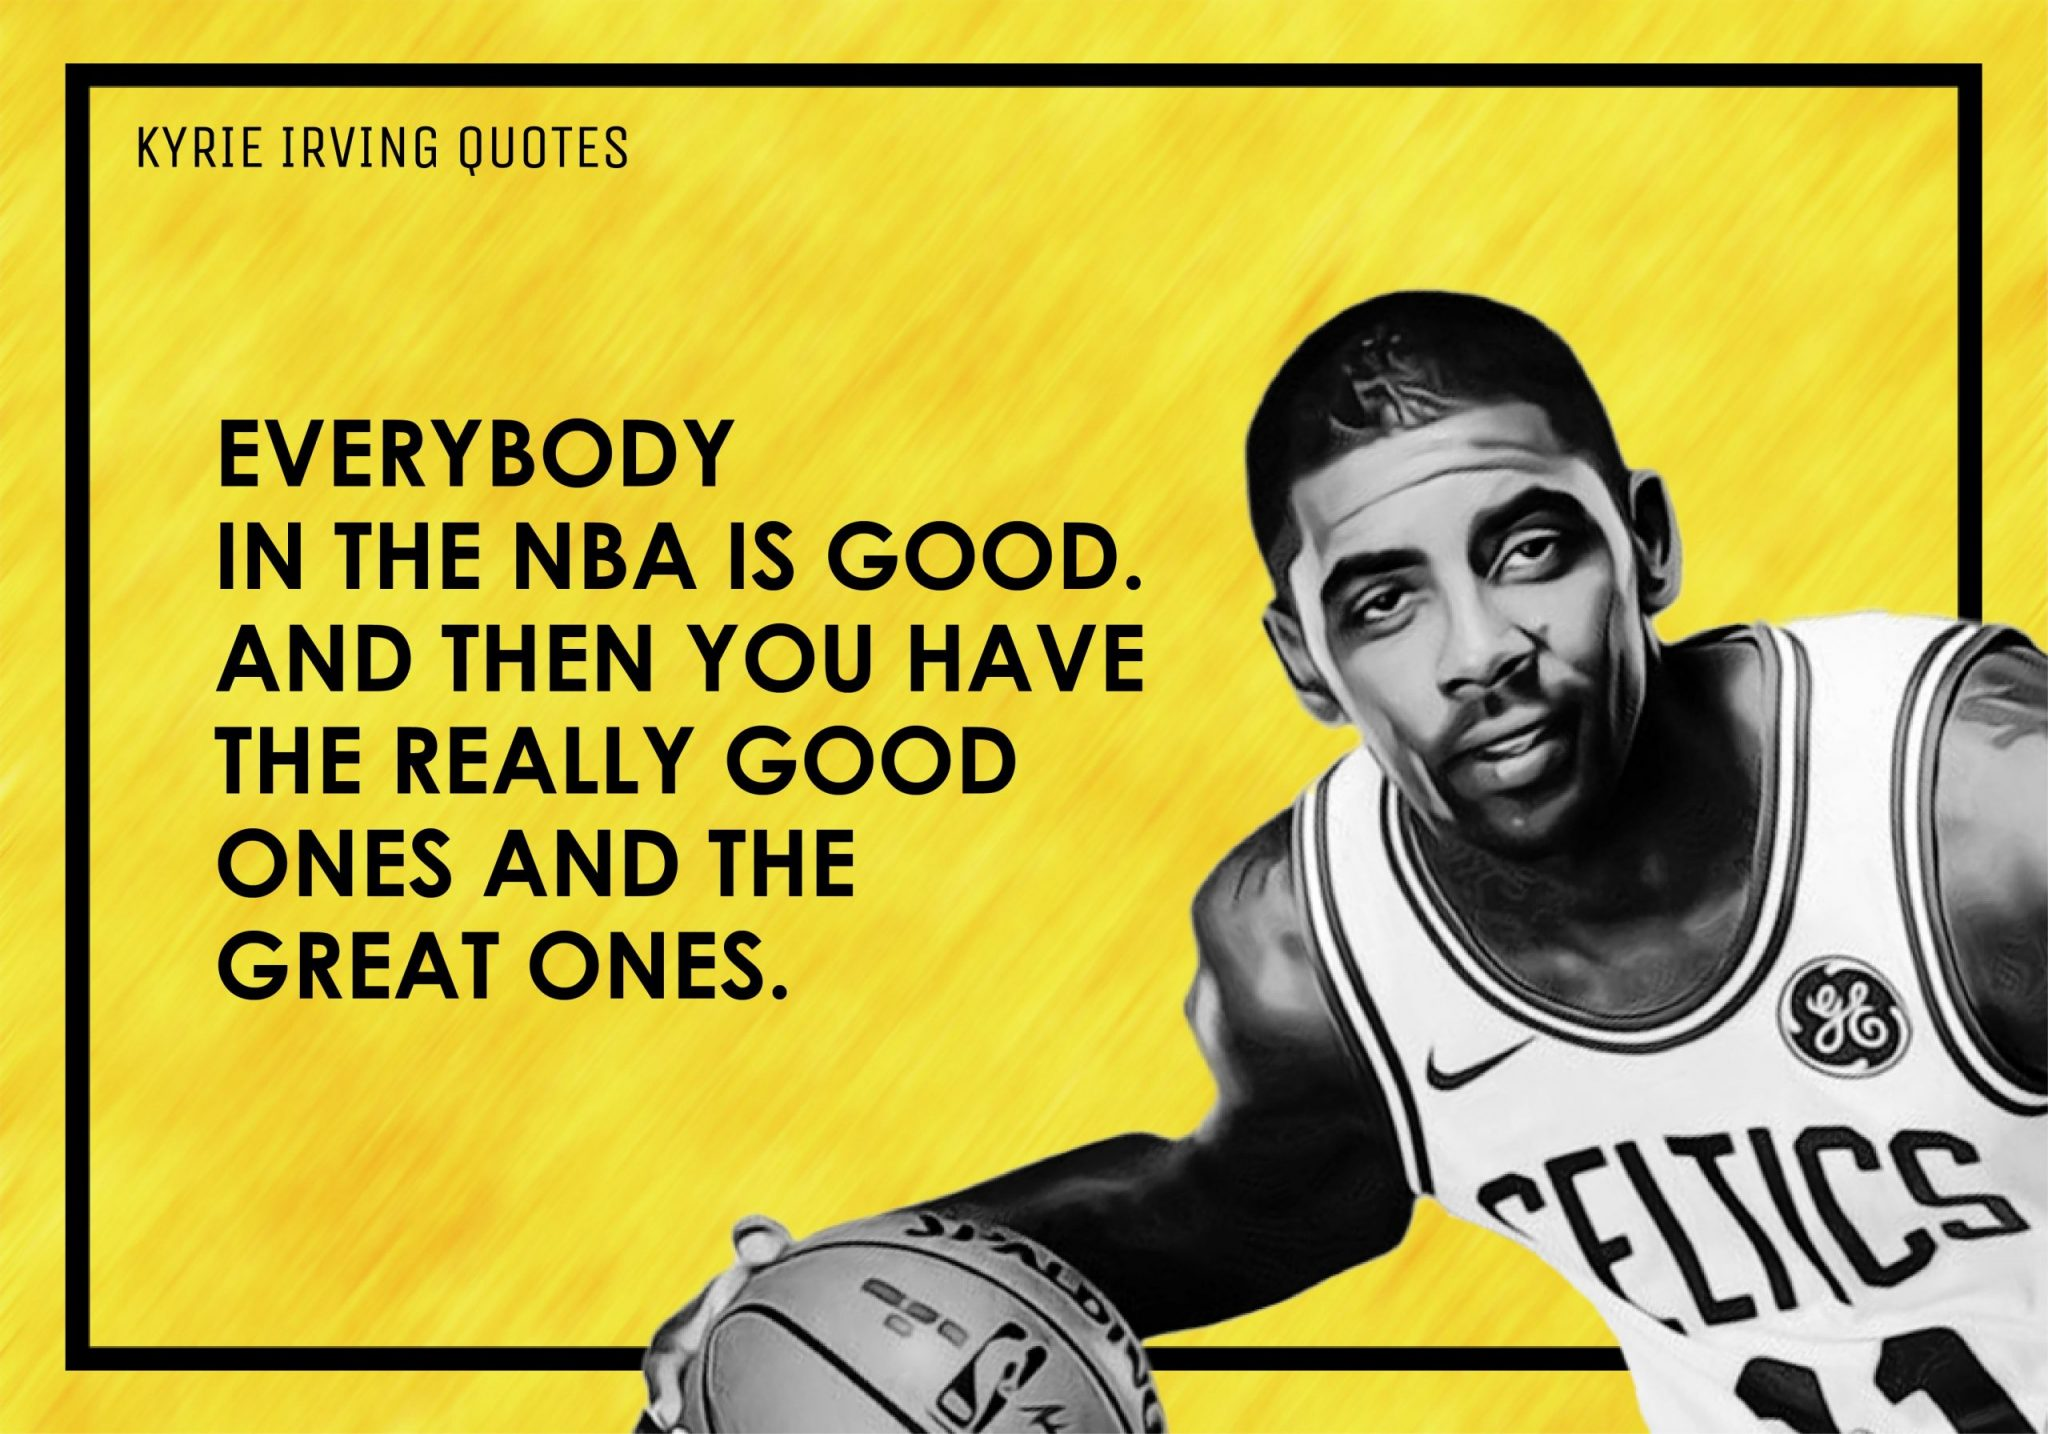 Kyrie Irving Quotes (4)